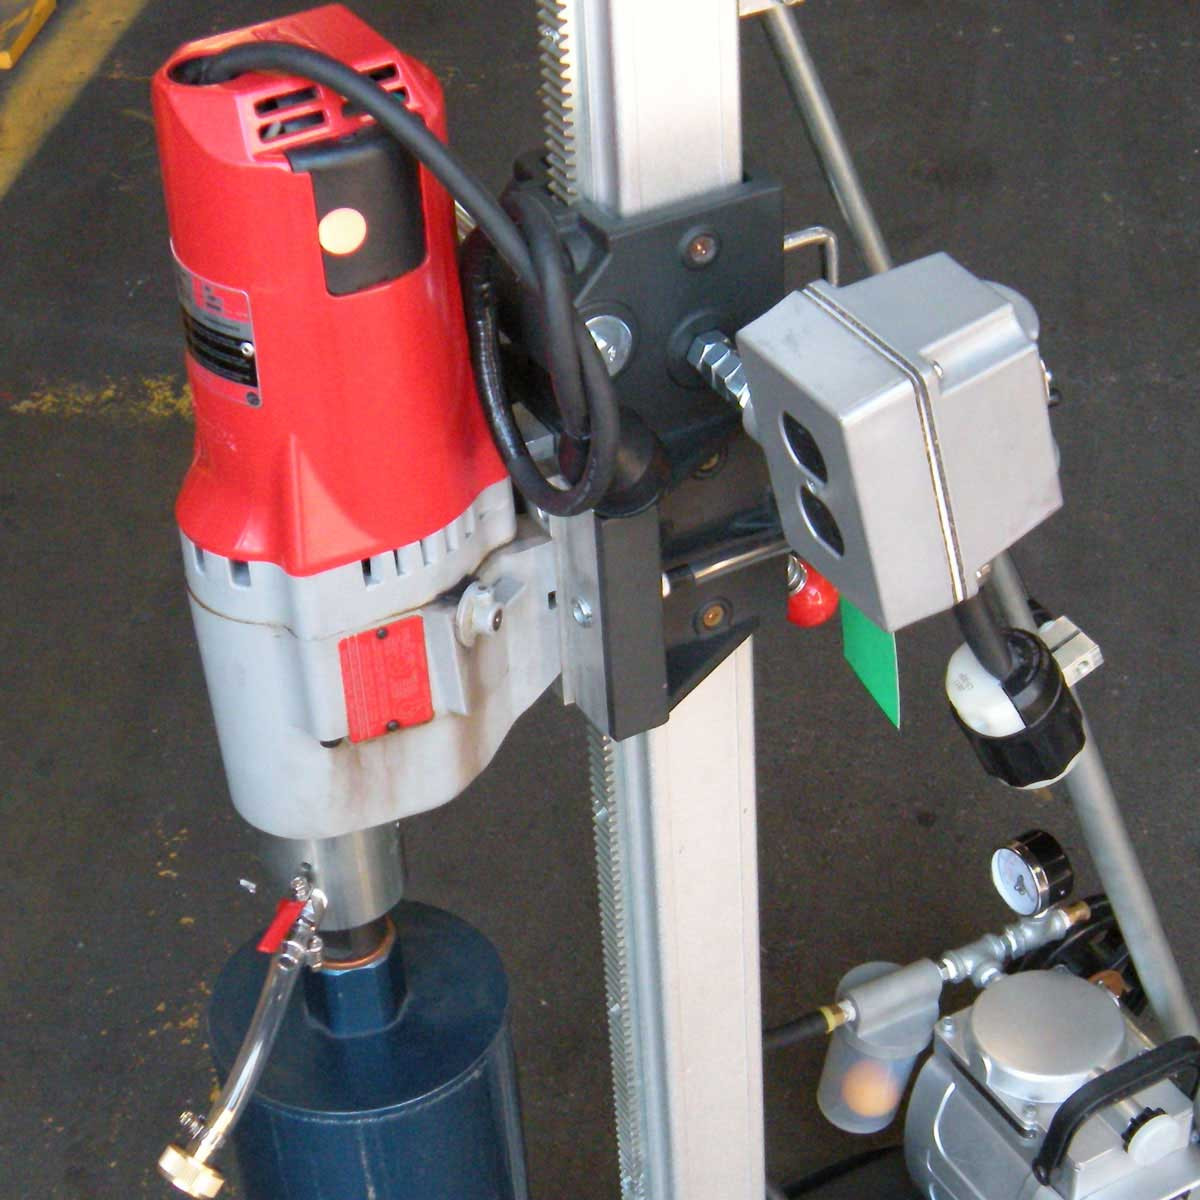 Milwaukee 4004 core drill stand